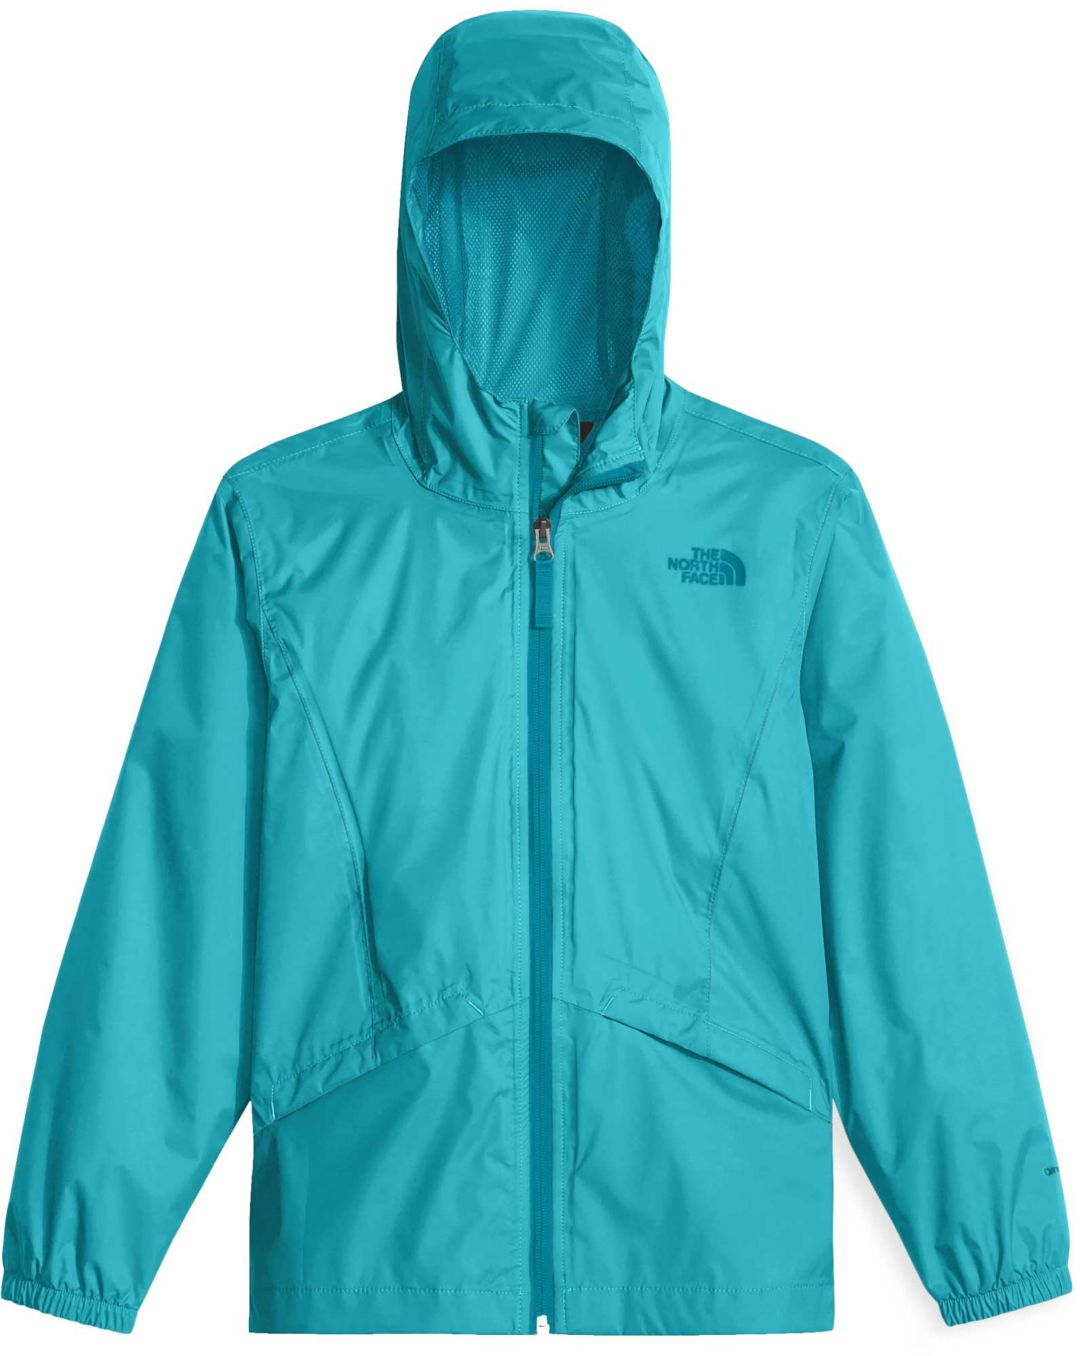 0ff79220 The North Face Girls' Zipline Rain Jacket | DICK'S Sporting Goods